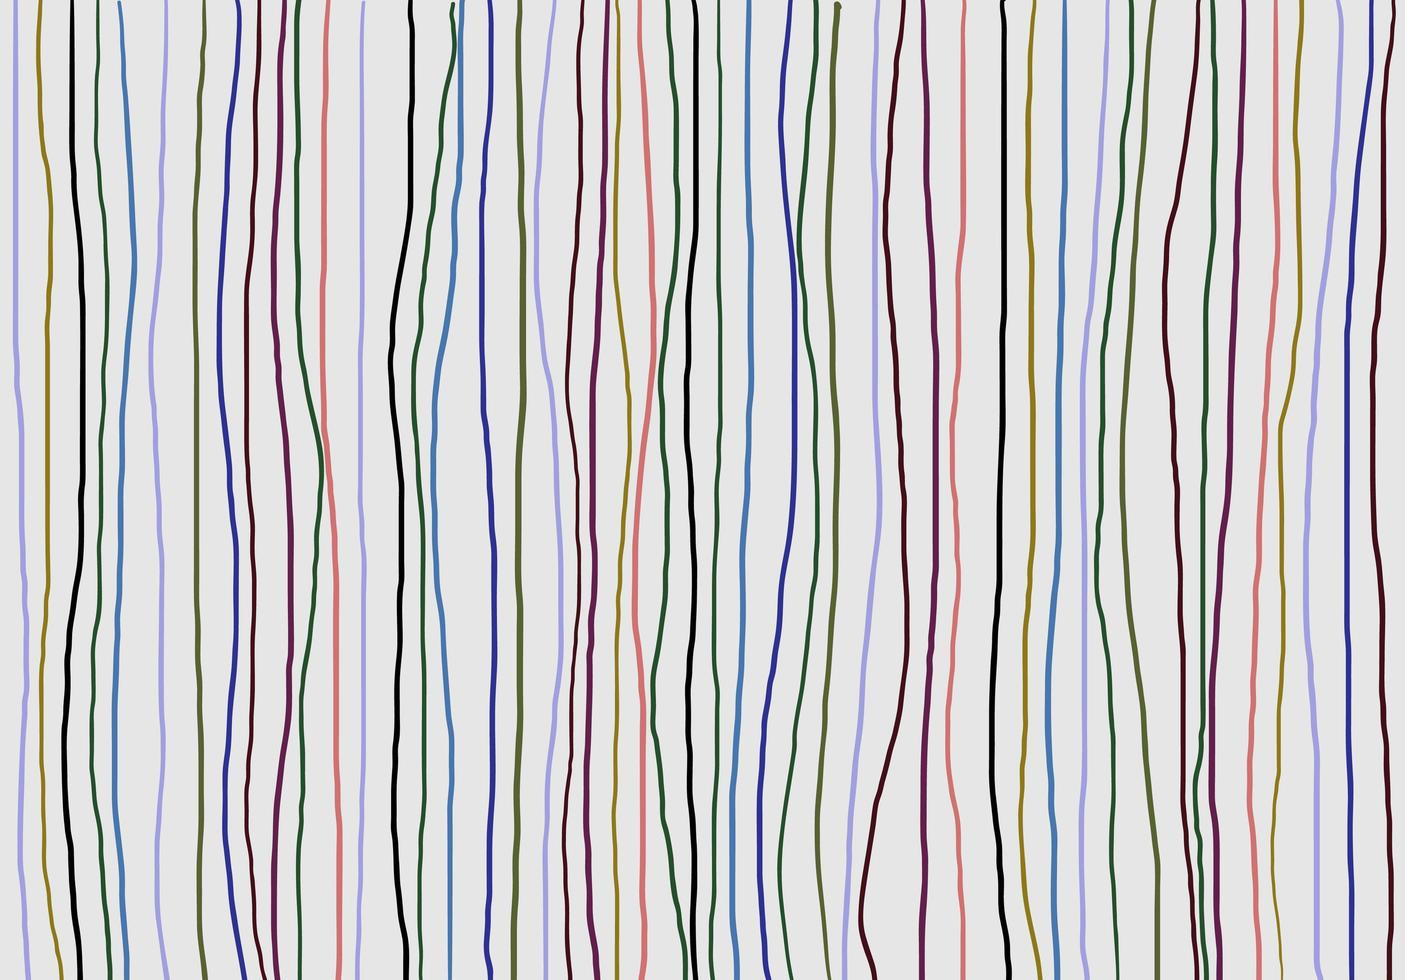 Abstract patterned doodle background vector